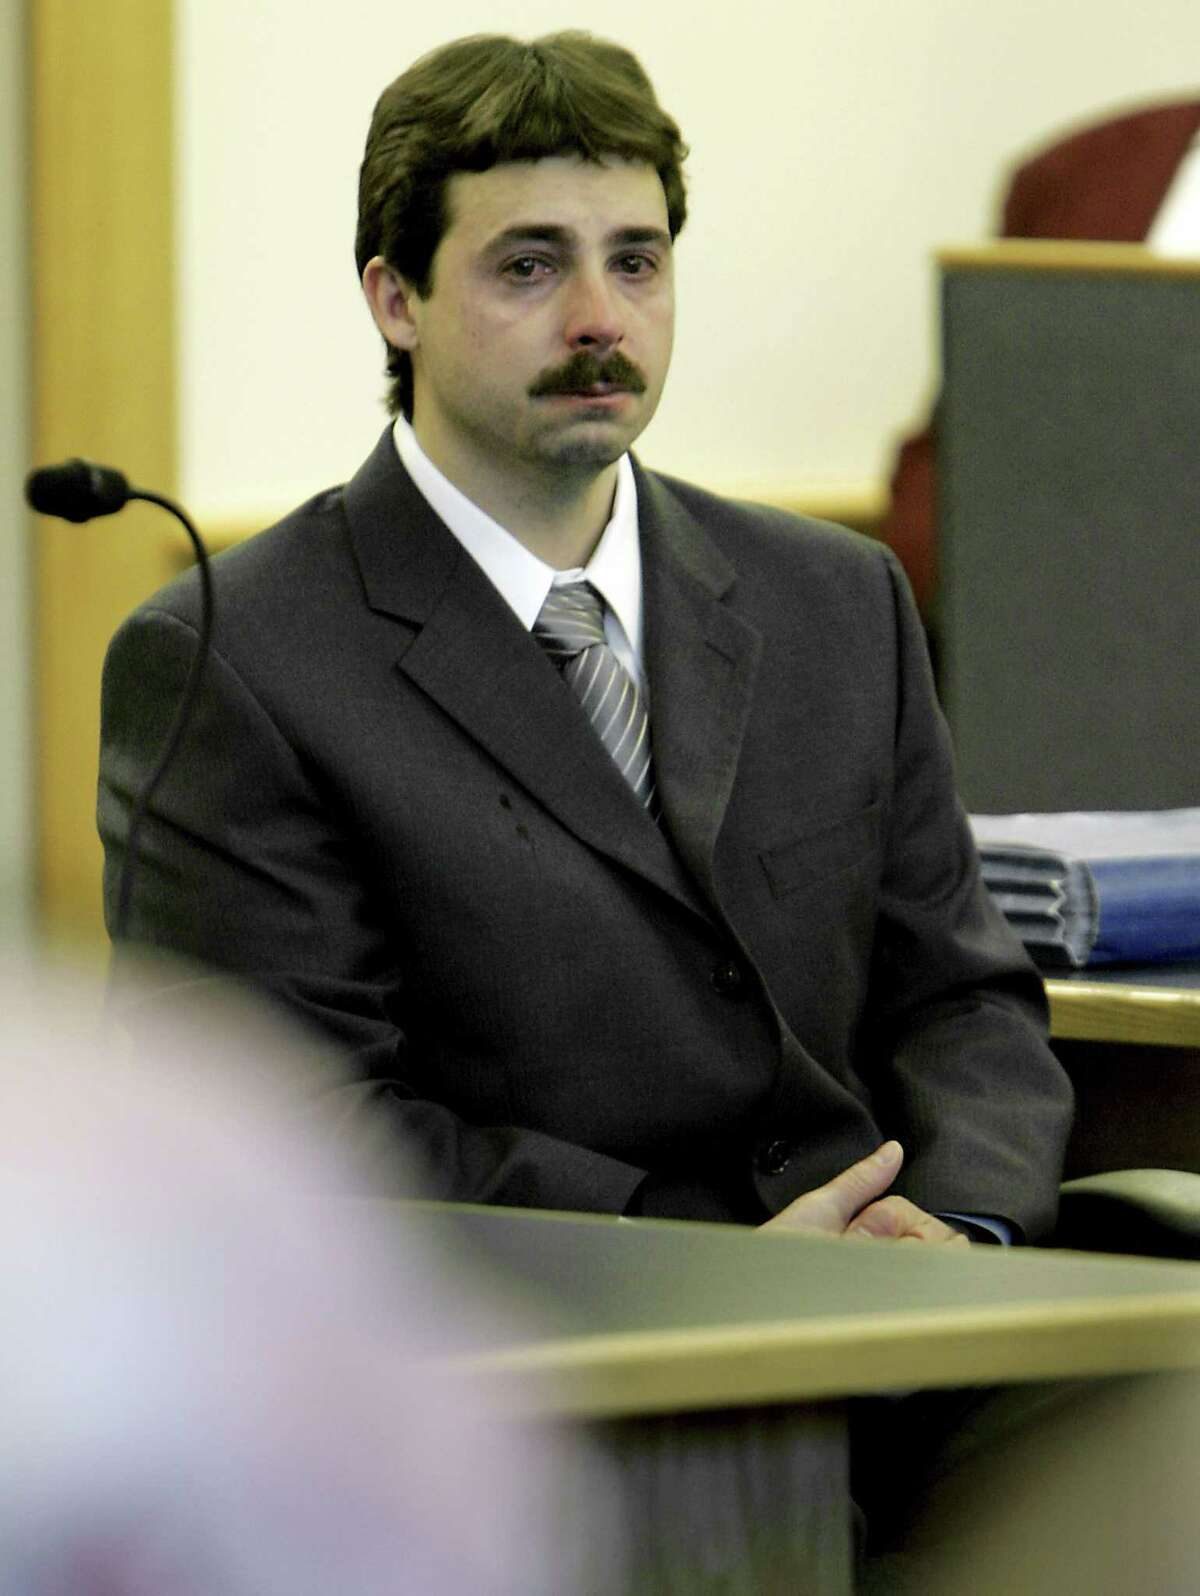 """FILE - In this Jan. 25, 2008 file photo, William """"Billy"""" Flynn, sits in Rockingham Superior Court in Brentwood, N.H. Flynn was convicted and sent to prison for killing Gregg Smart, the husband of his lover, Pamela Smart, in Derry, N.H., in 1990. Flynn was released from prison in Maine on parole Thursday, June 4, 2015 after serving nearly 25 years. (AP Photo/Cheryl Senter, Pool, File)"""